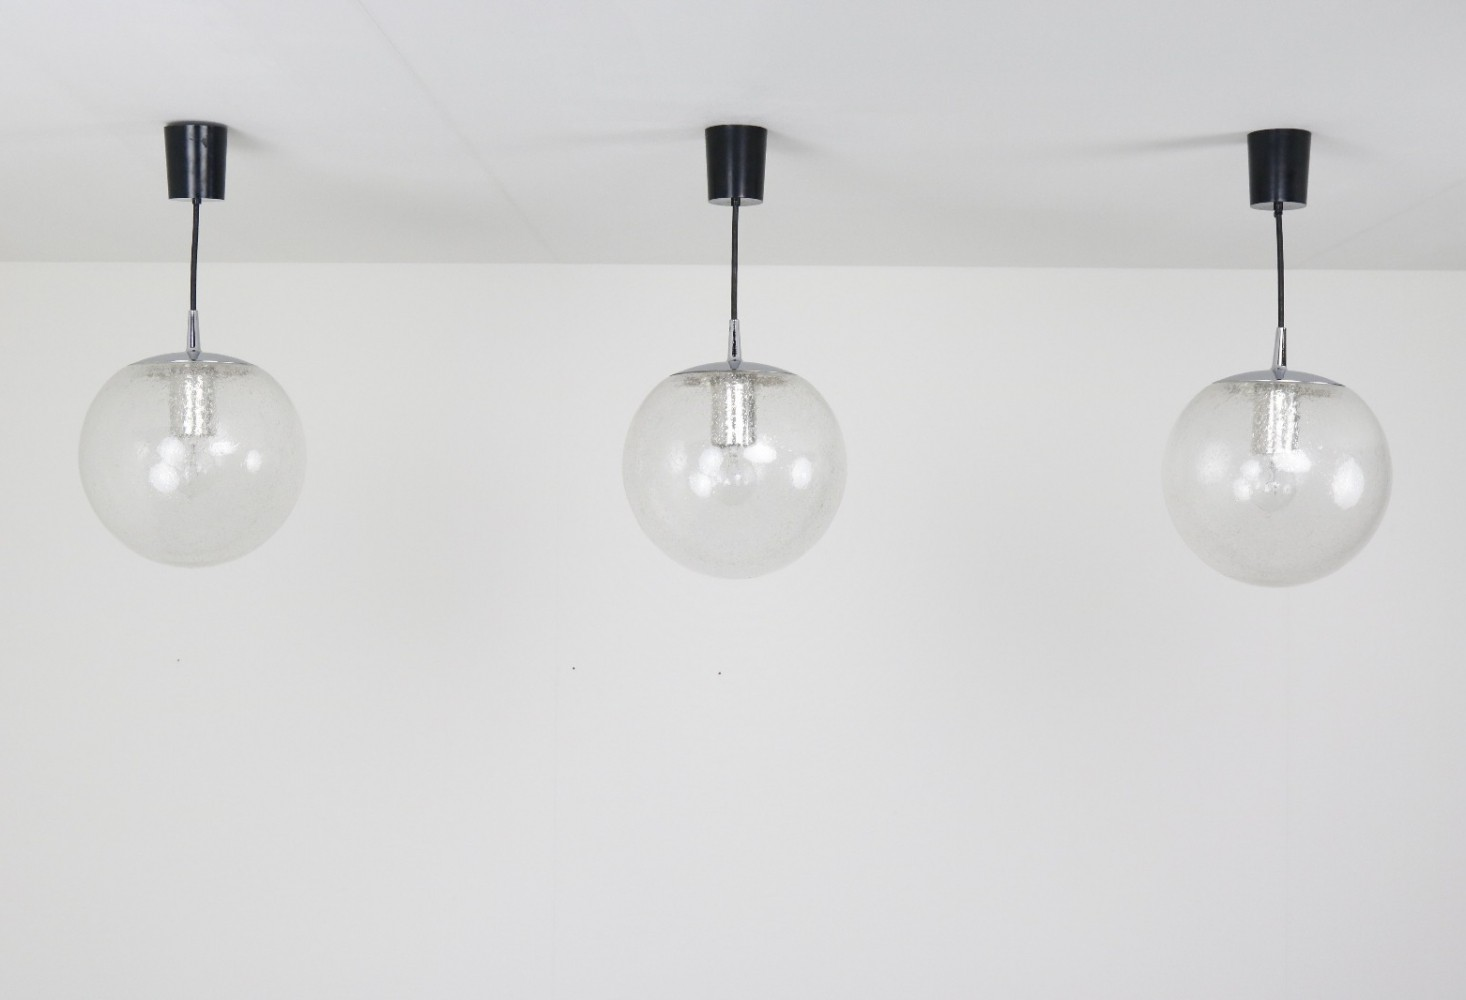 3 x Bubble glass globe hanging lamps by Peill & Putzler, 1970s